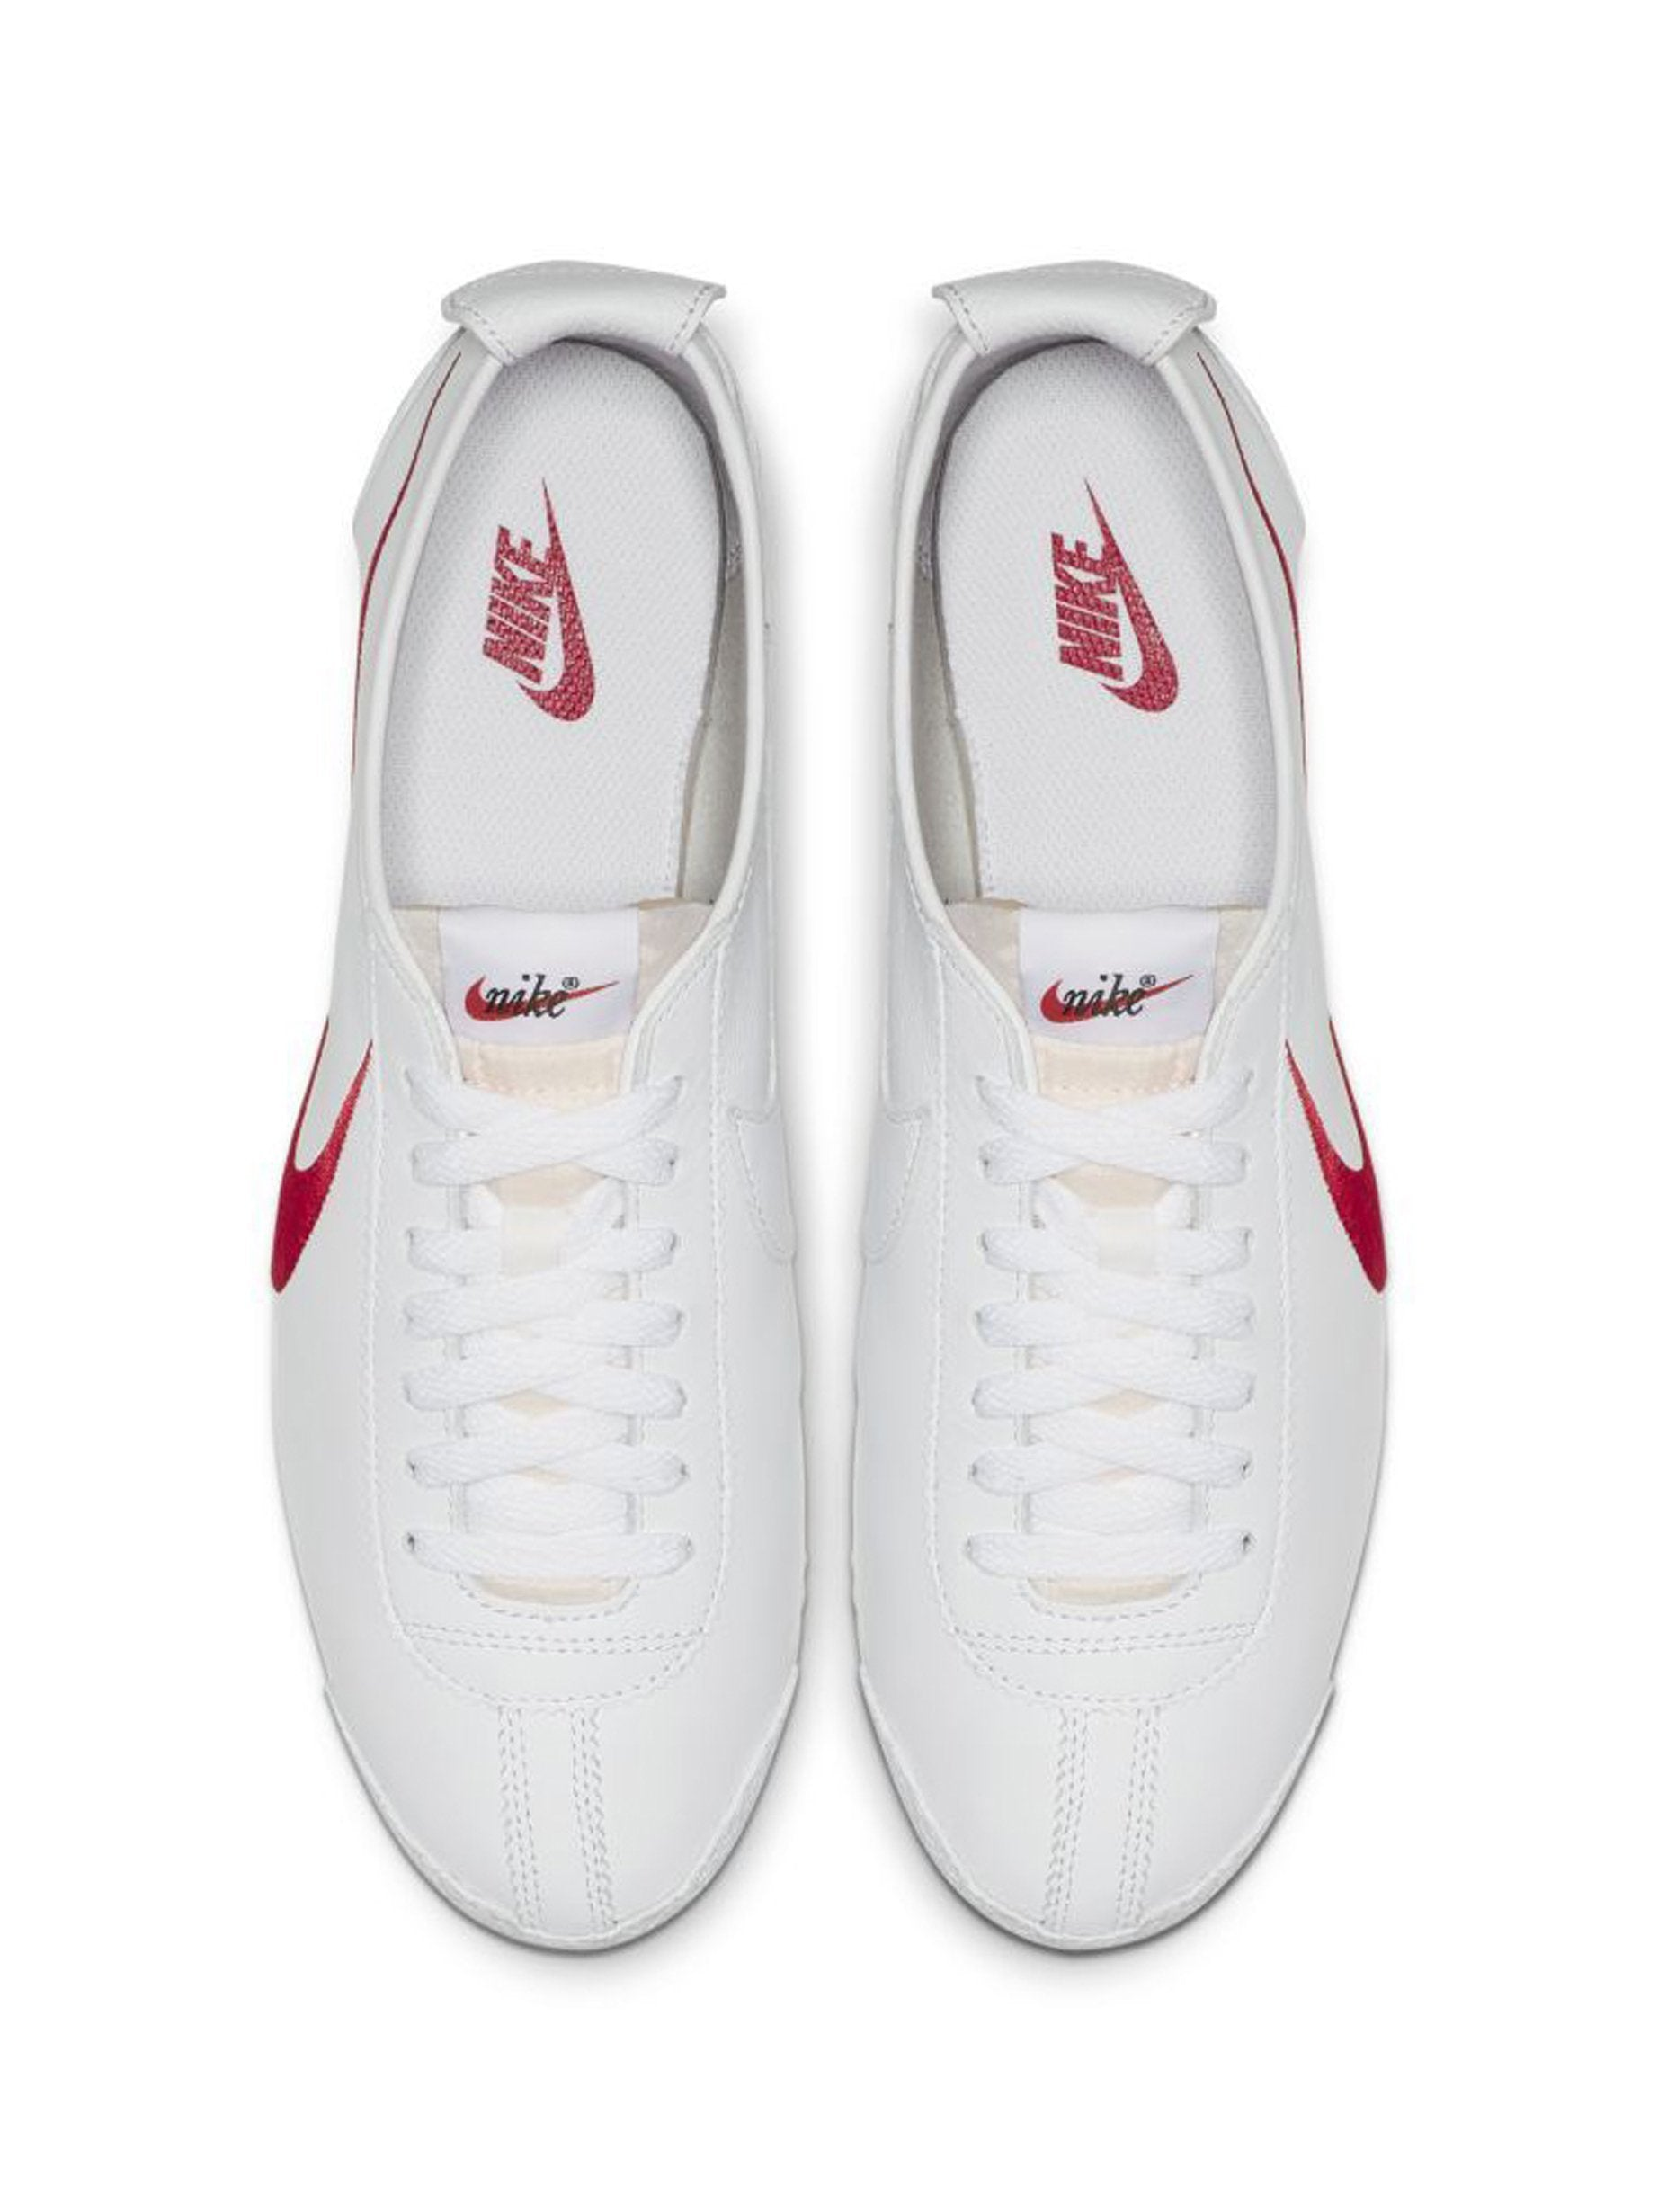 White / Varsity Red/ Game Royal Nike Cortez '72 Shoedog Q (Swoosh) 5